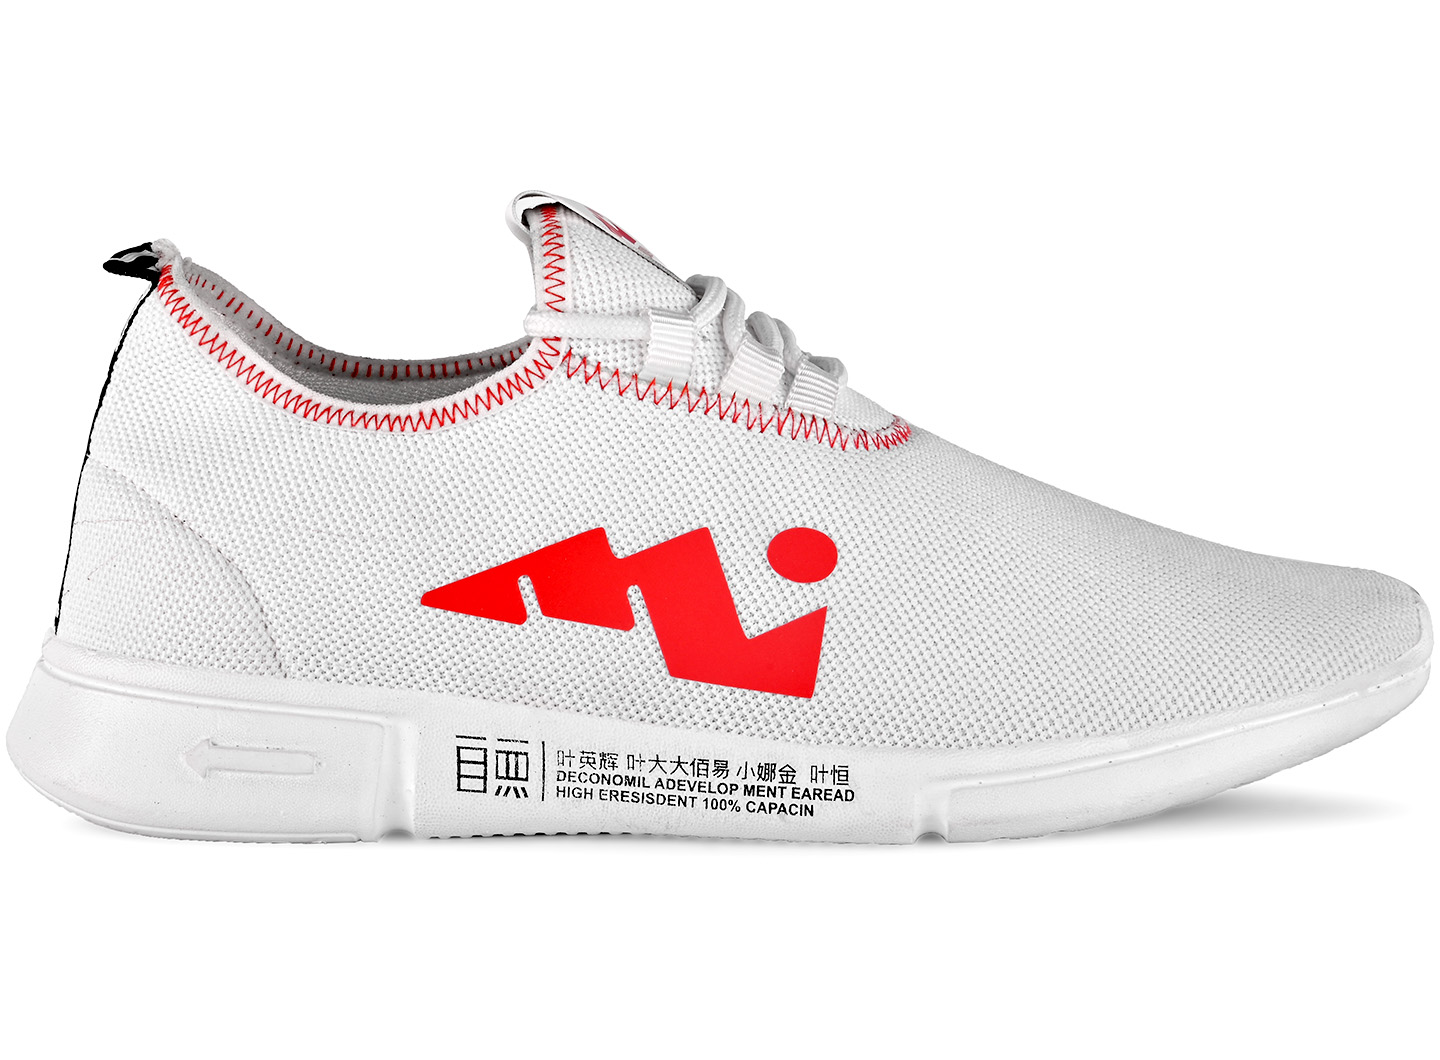 JK PORT Comfortable And Trendy Sports Shoes JKPSB62WHT Are Reliable For Any Sports (White,6-10,8 PAIR)